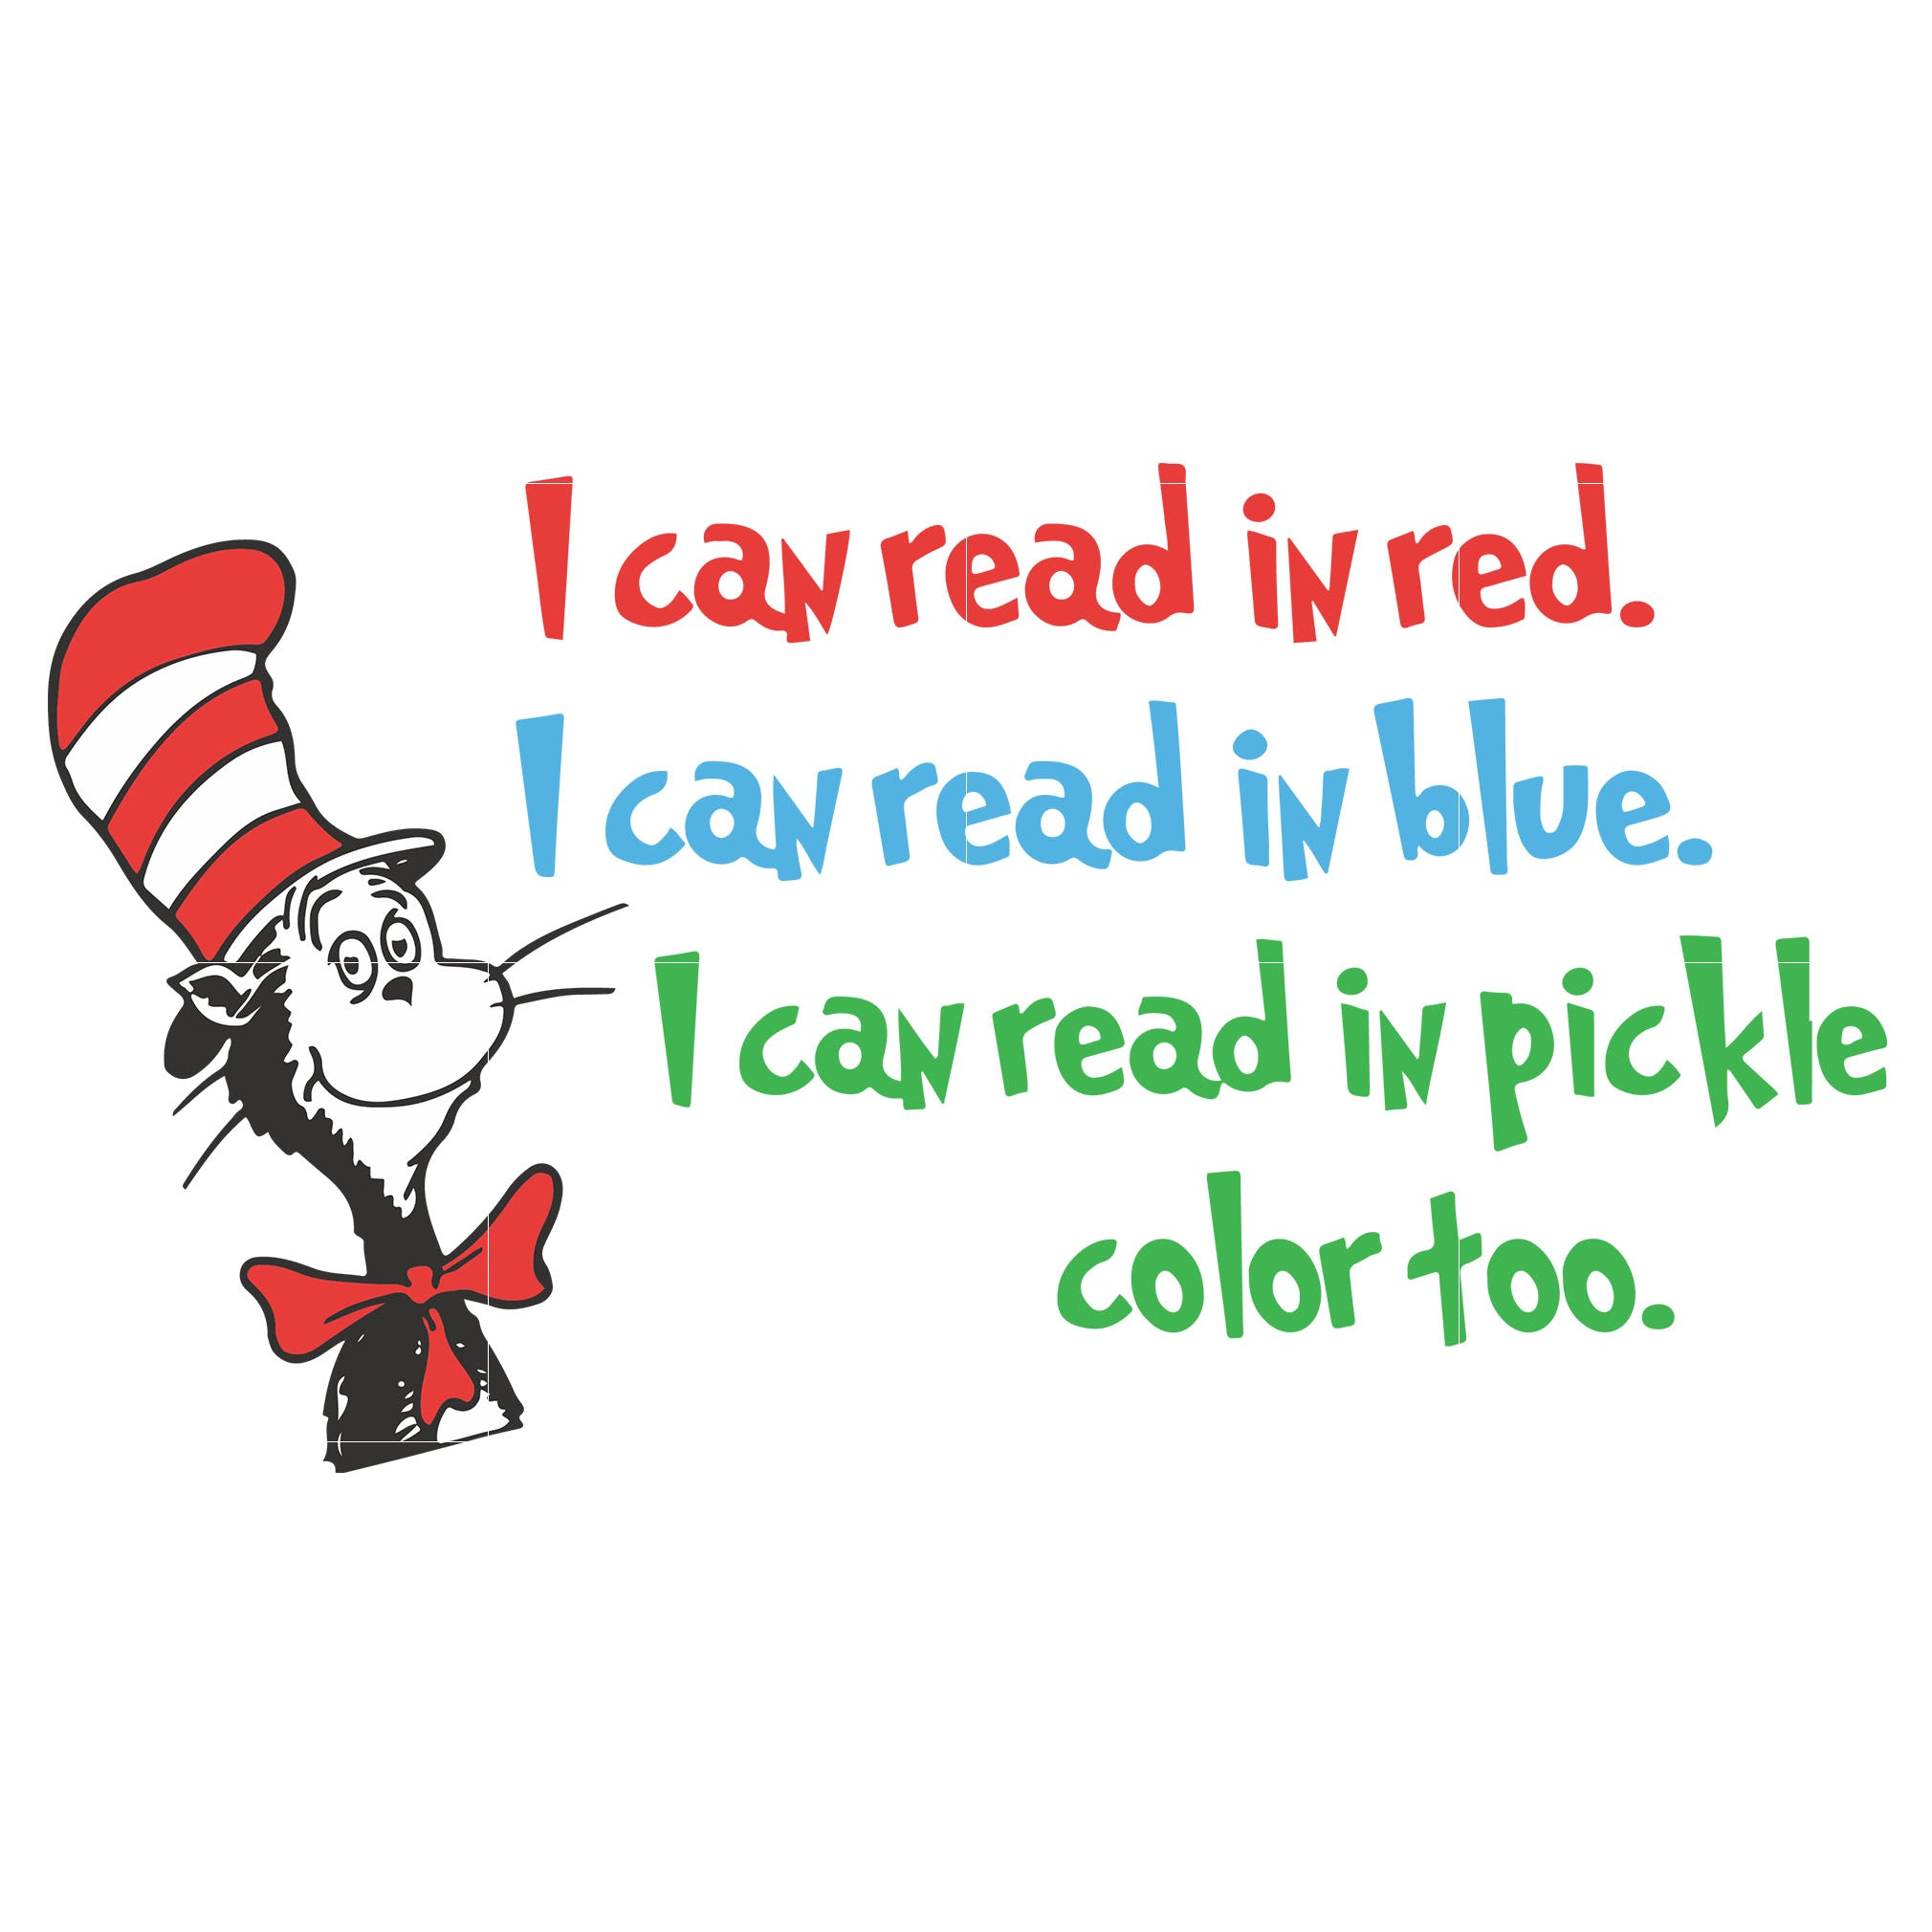 I can read in red i can read in blue i can read in pickle color too, dr seuss svg, dr seuss quotes digital file